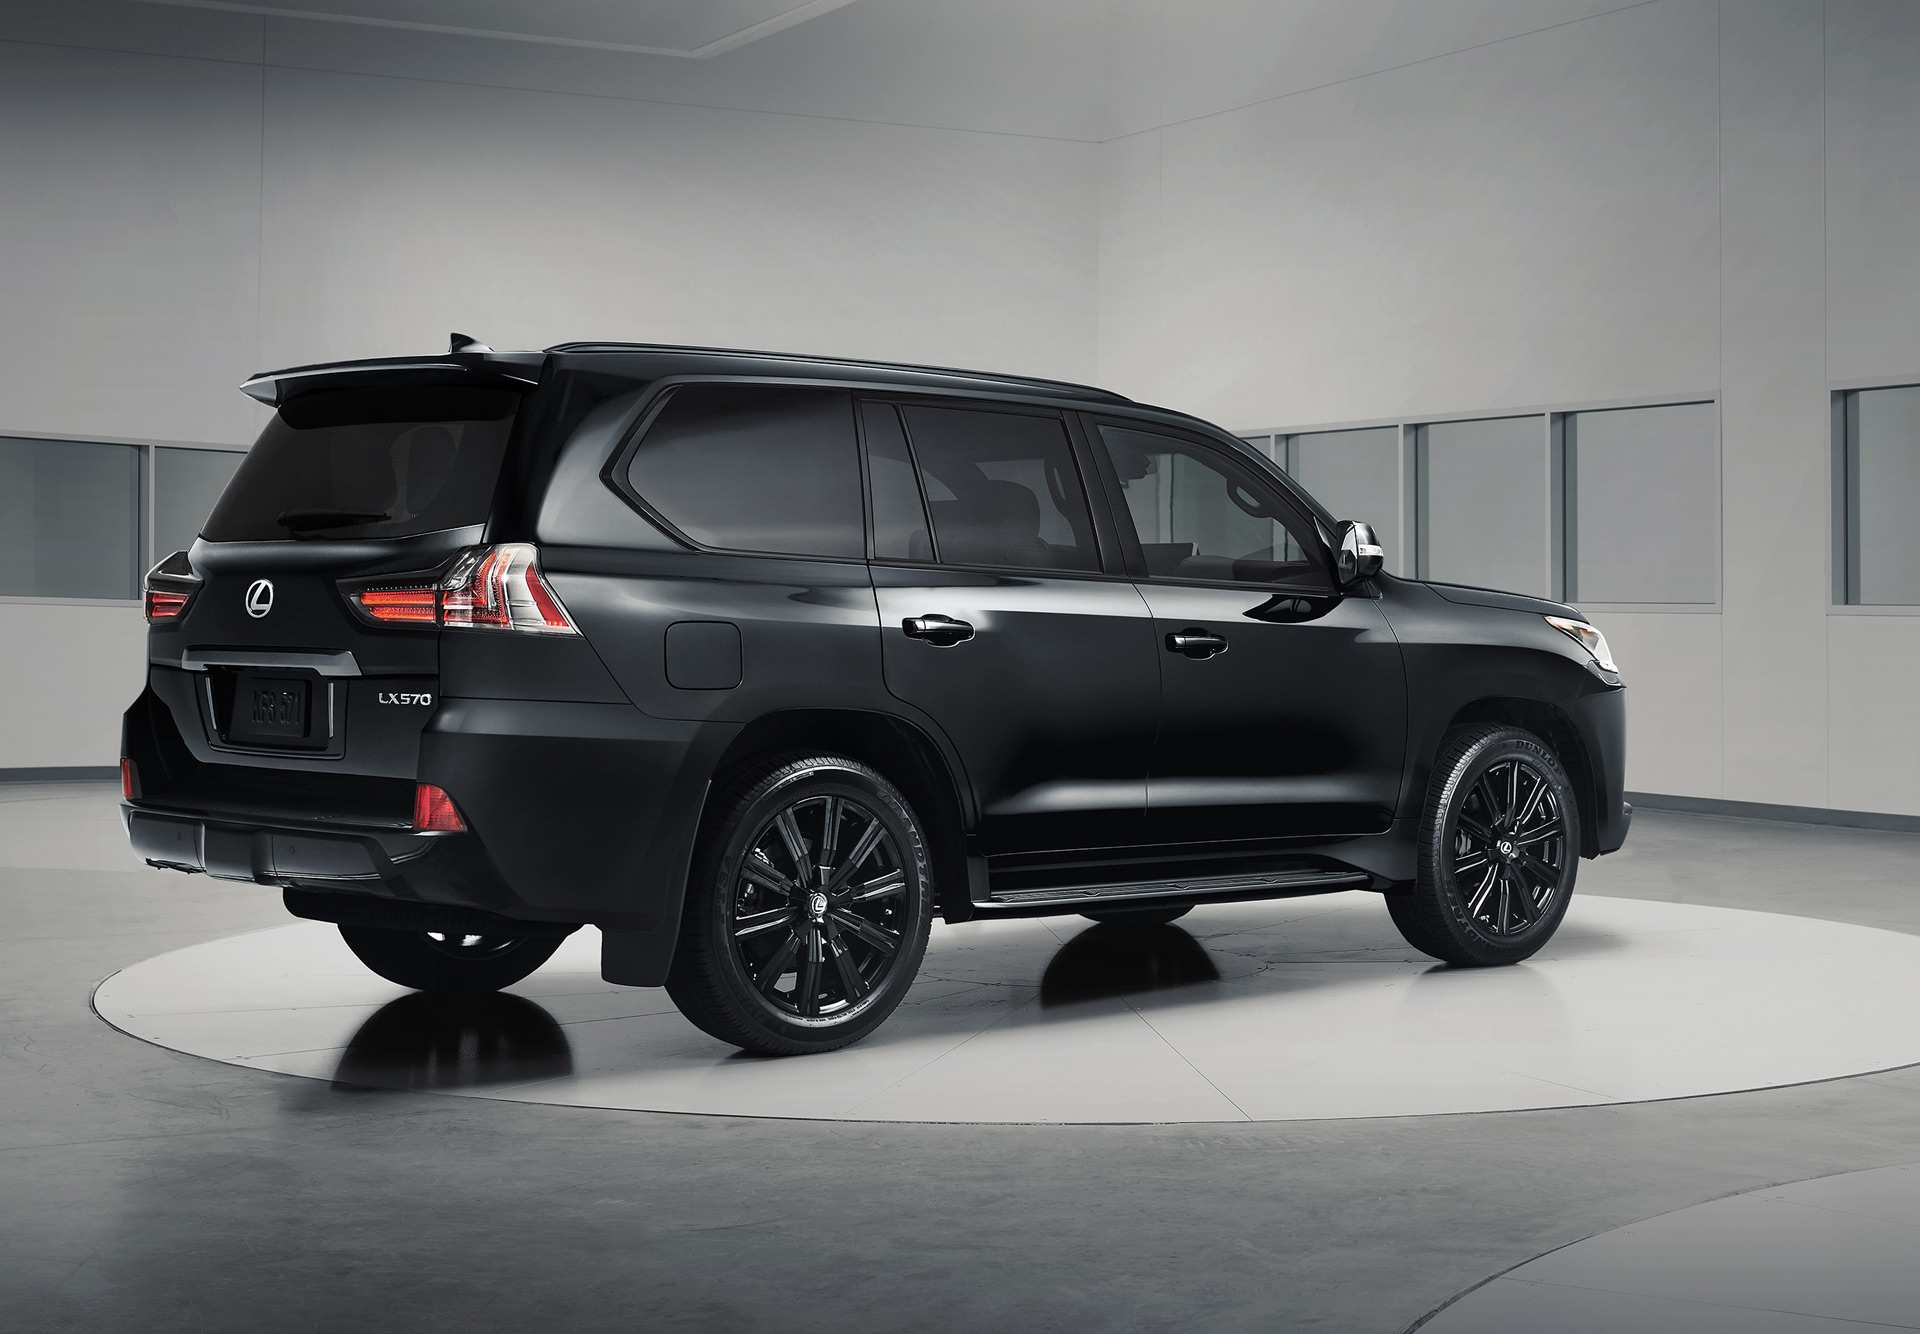 14 All New Lexus Prado 2020 Images